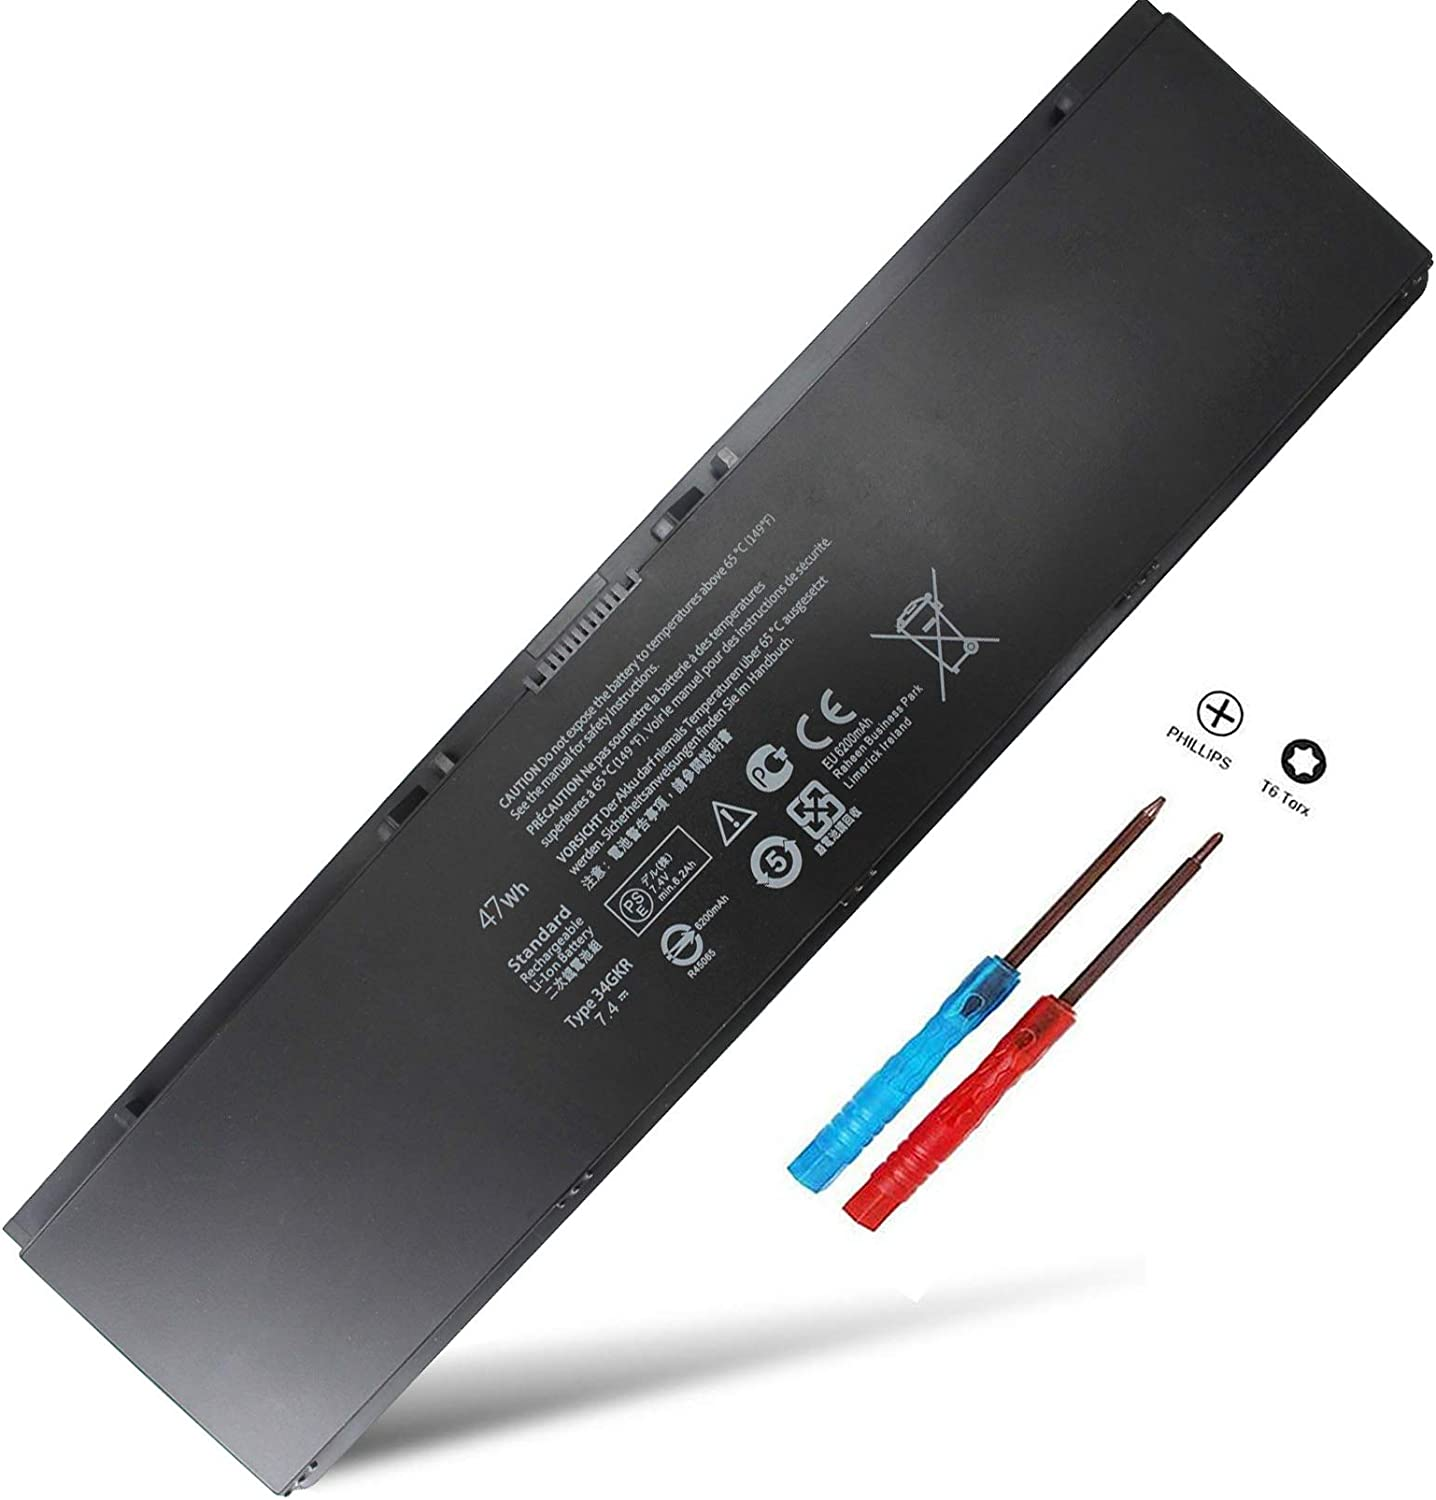 E7440 E7450 Laptop Battery Compatible with Dell LatitudeE7420 7440 7450 Battery fit 451-BBFV 451-BBFT 451-BBFY3RNFD G0G2M PFXCR T19VW 34GKR 0909H5 0G95J5 E225846 47WH